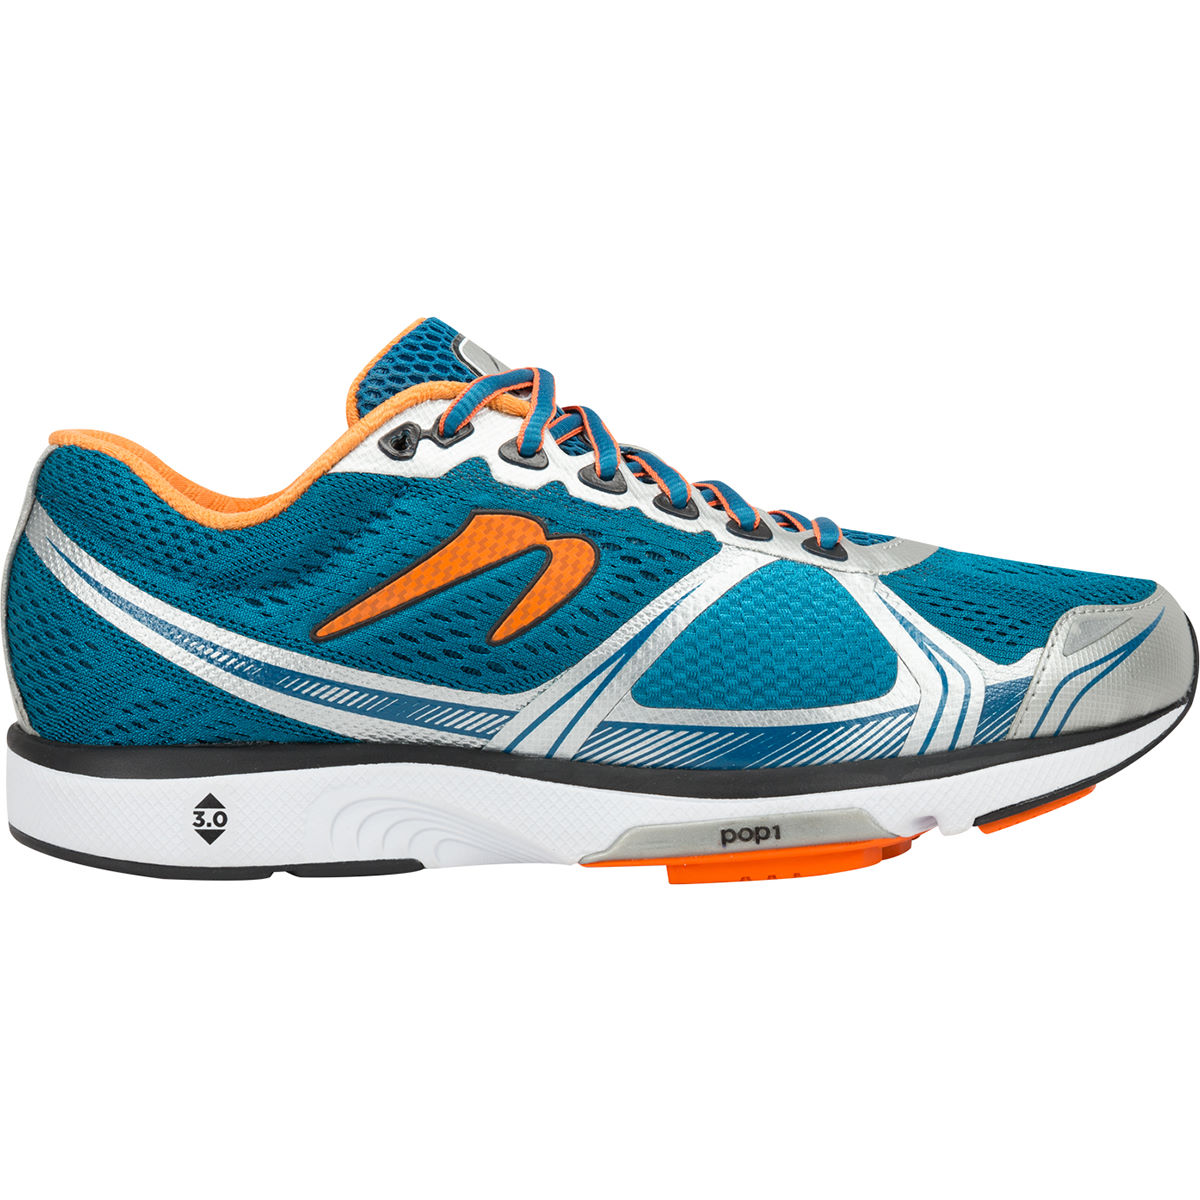 Chaussures Newton Running Shoes Motion VI - 9,5 UK Bleu Chaussures de running amorties